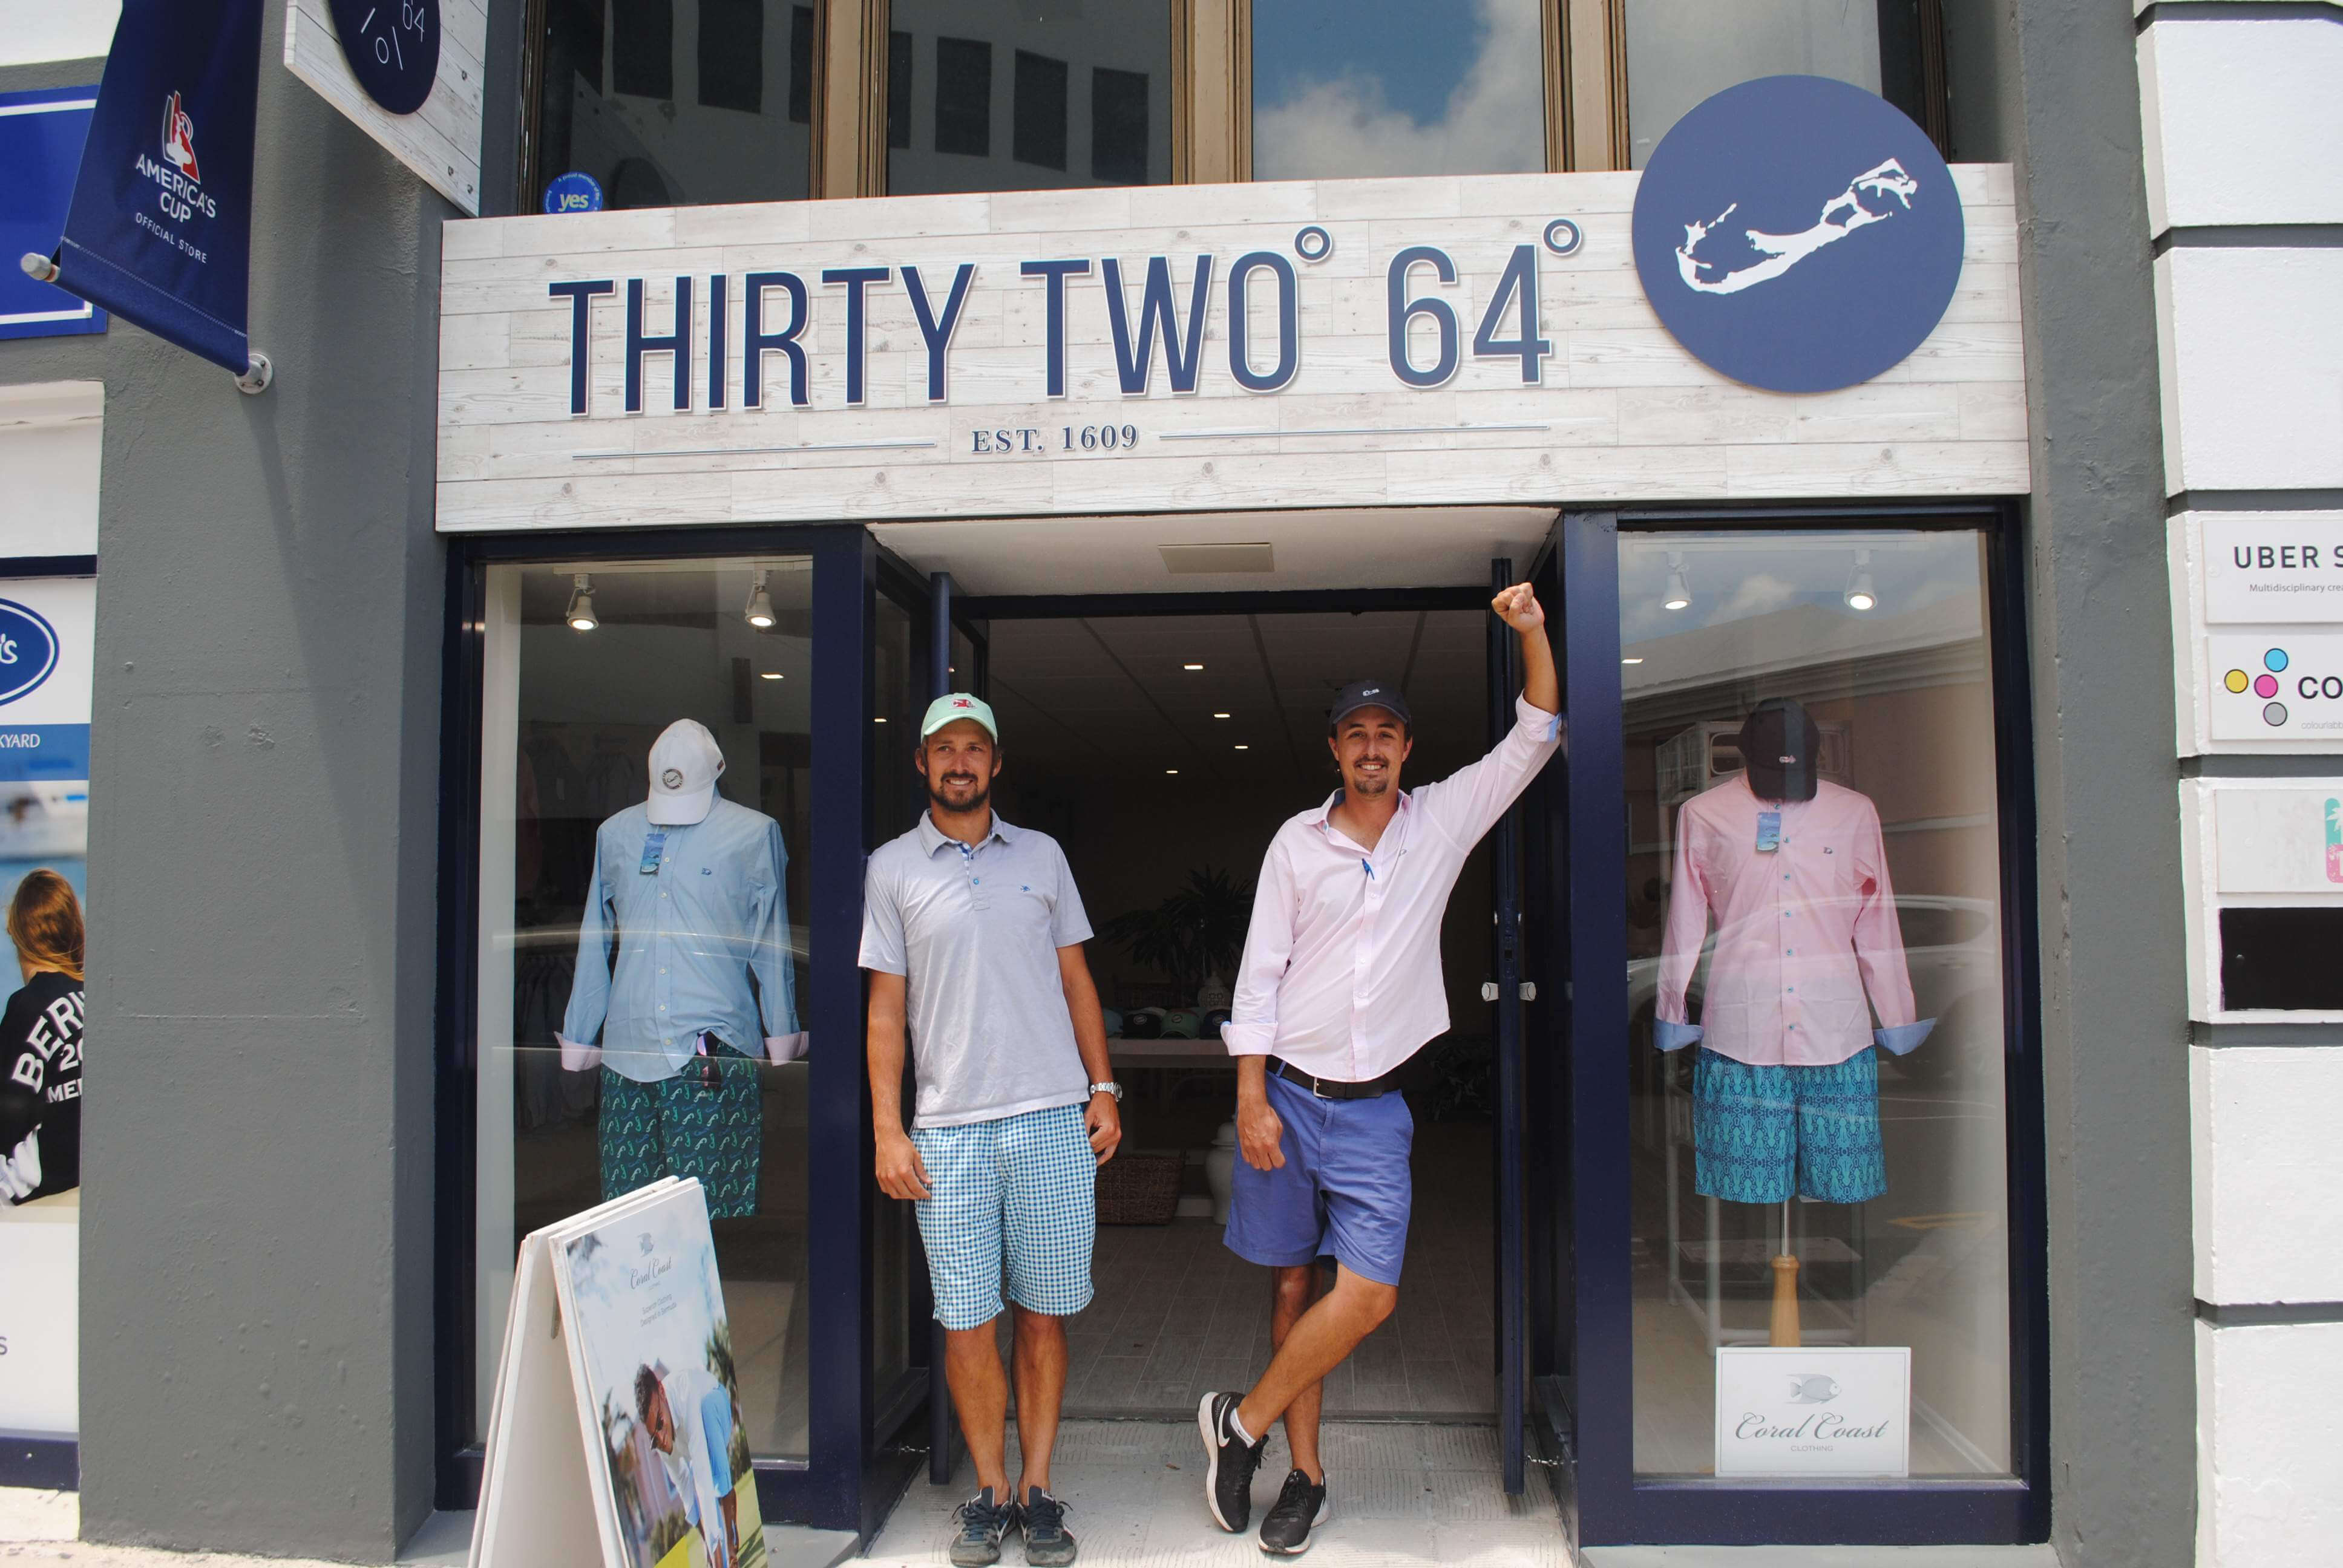 Thirty Two 64 Look Good – Feel Great